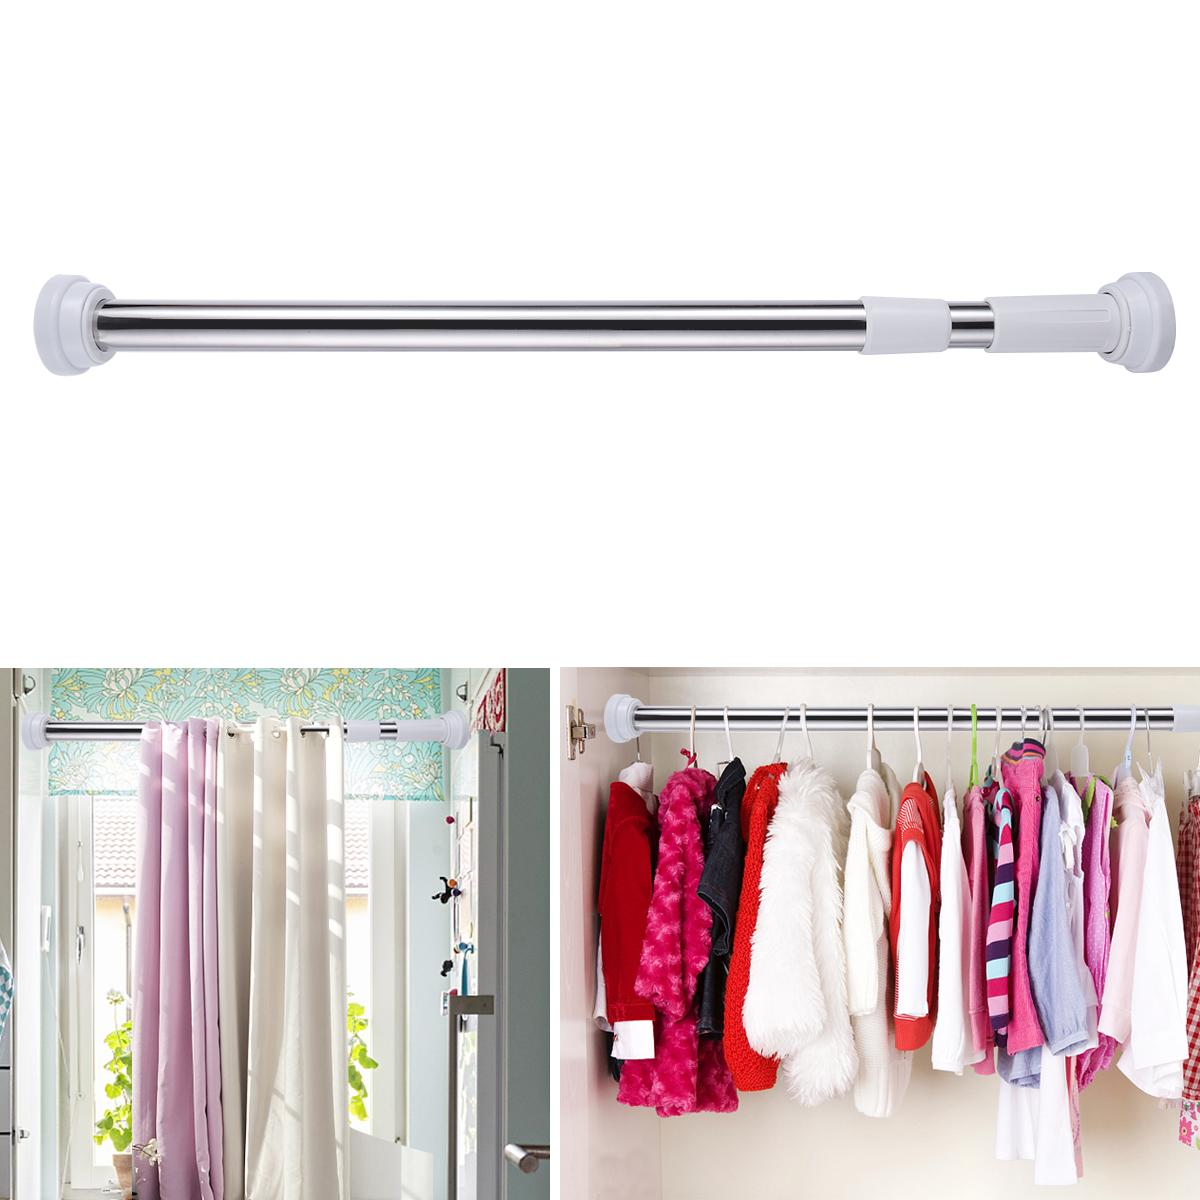 2018 Stainless Steel Bathroom Shower Curtain Rod Adjustable Tension From Huayama 2505